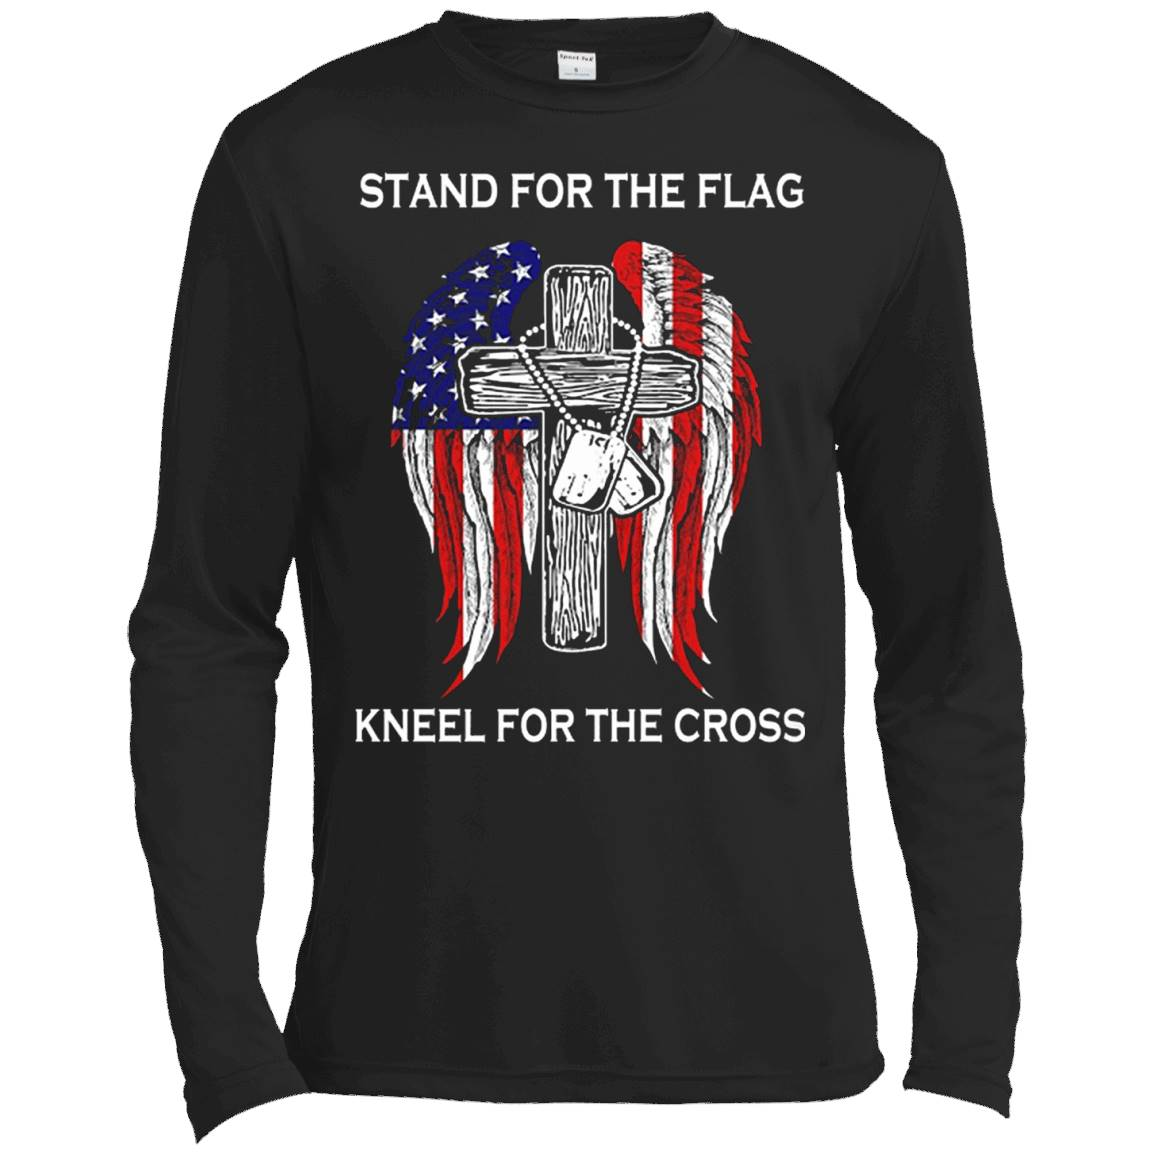 Stand For The Flag Kneel For The Cross T-Shirt – Long Sleeve Tee